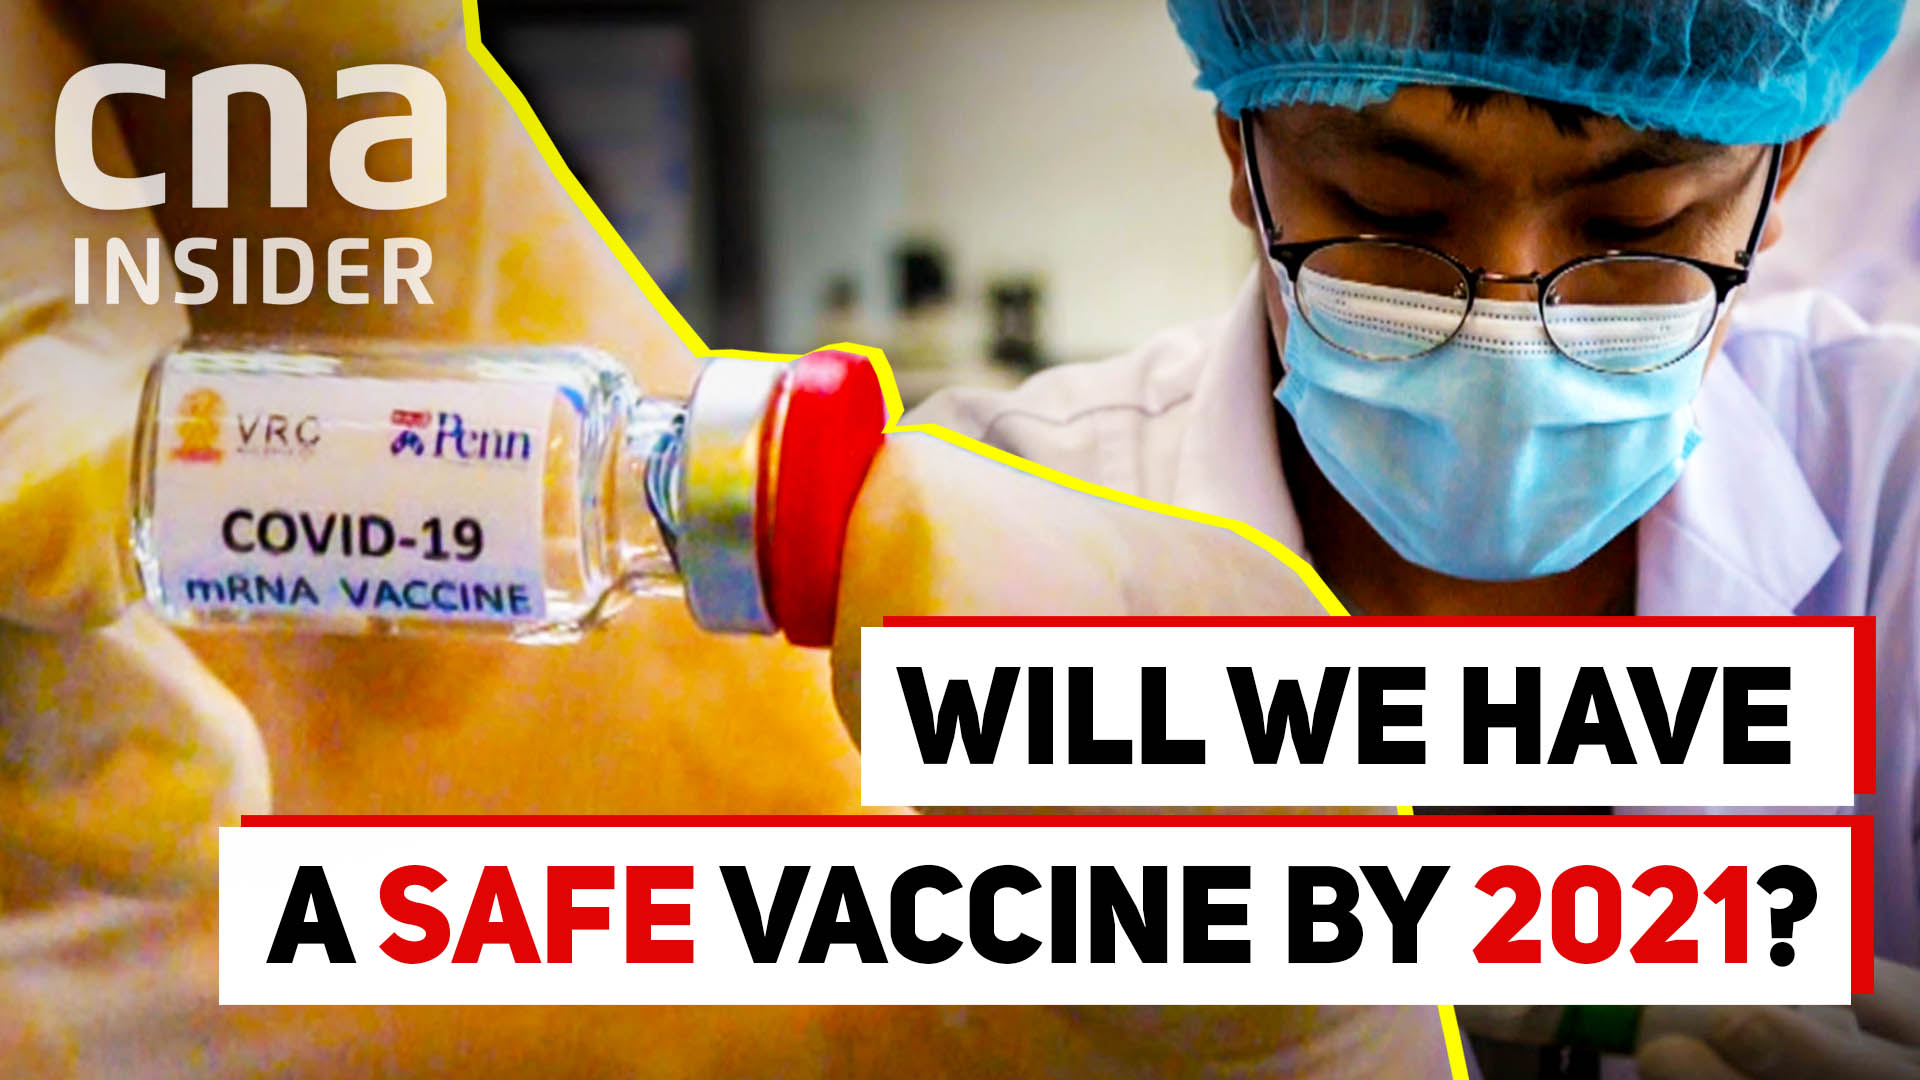 Is A Safe COVID-19 Vaccine By 2021 Really Possible?